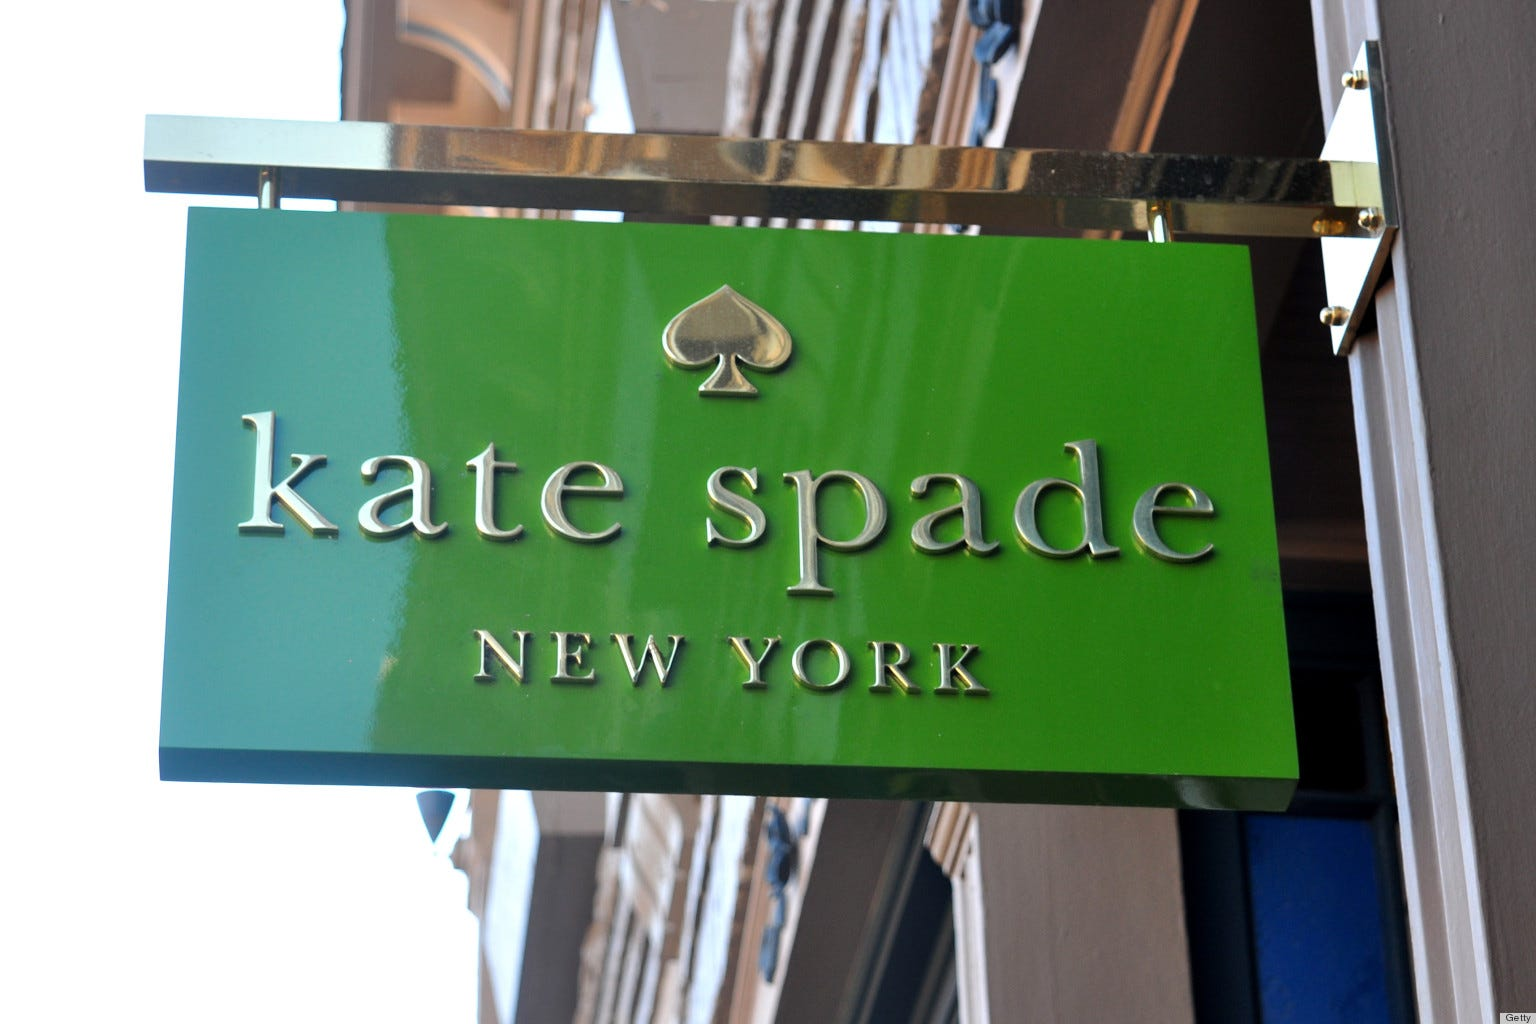 Coach to acquire Kate Spade for $2.4 billion